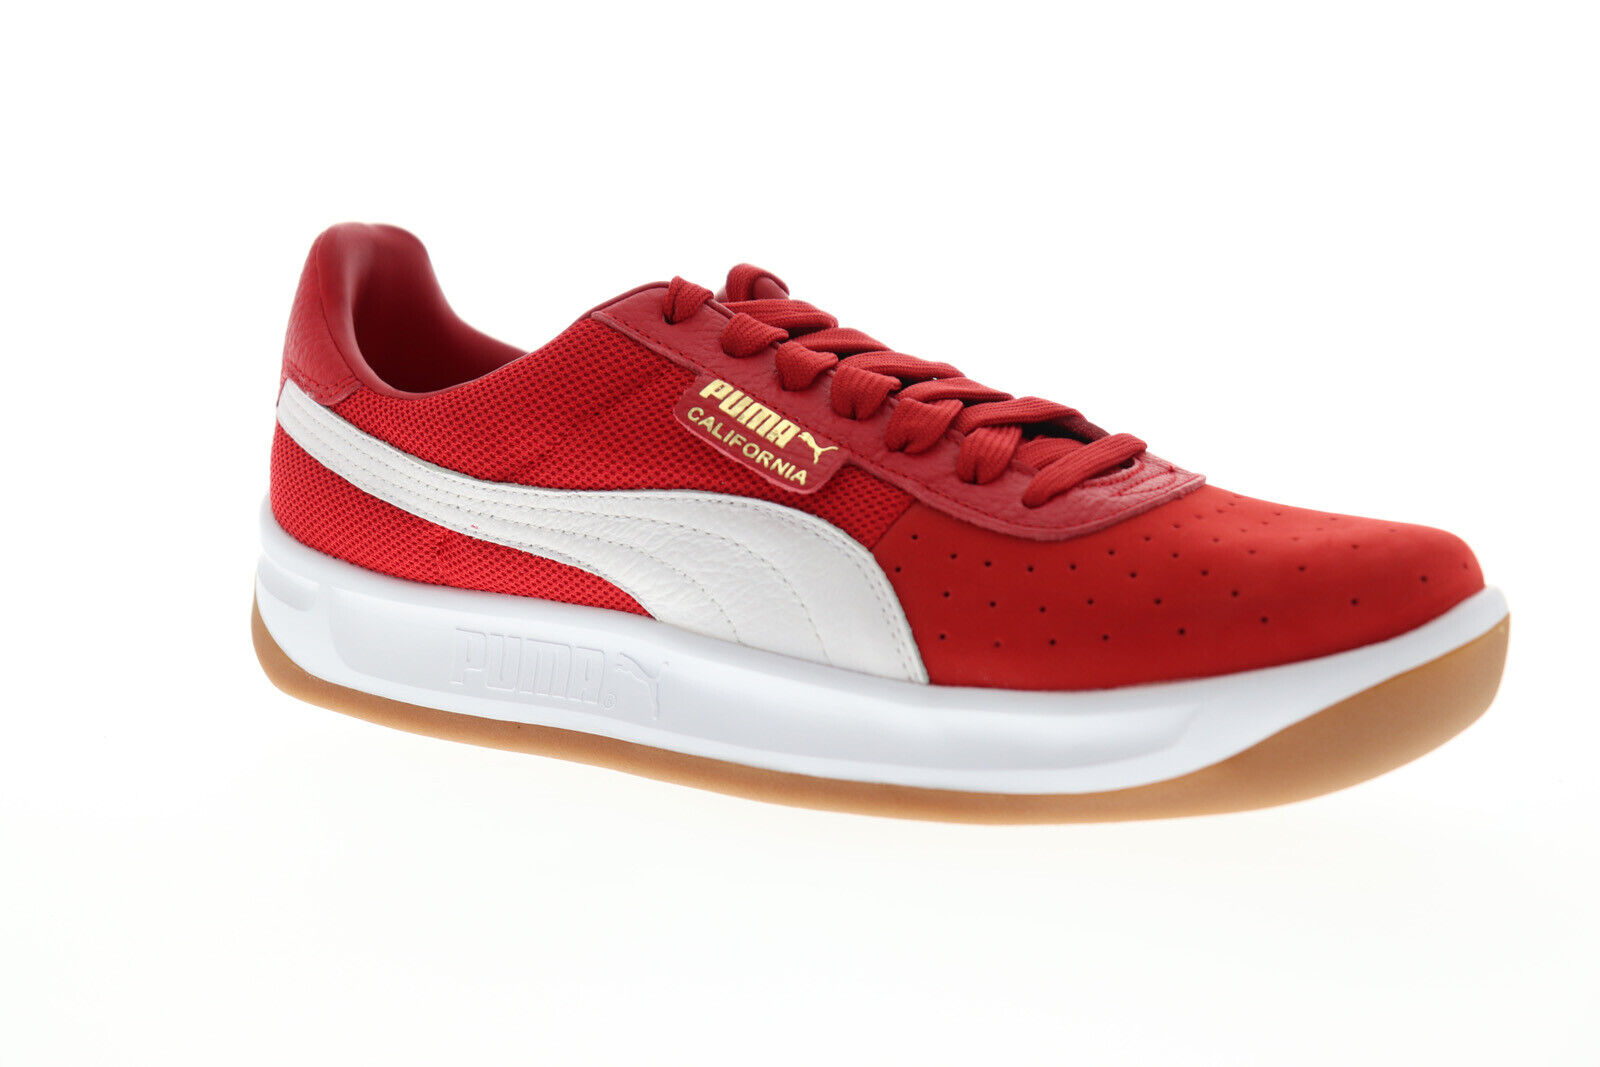 Puma California Casual 36660807 Mens Red Mesh Classic Low top Sneakers Shoes